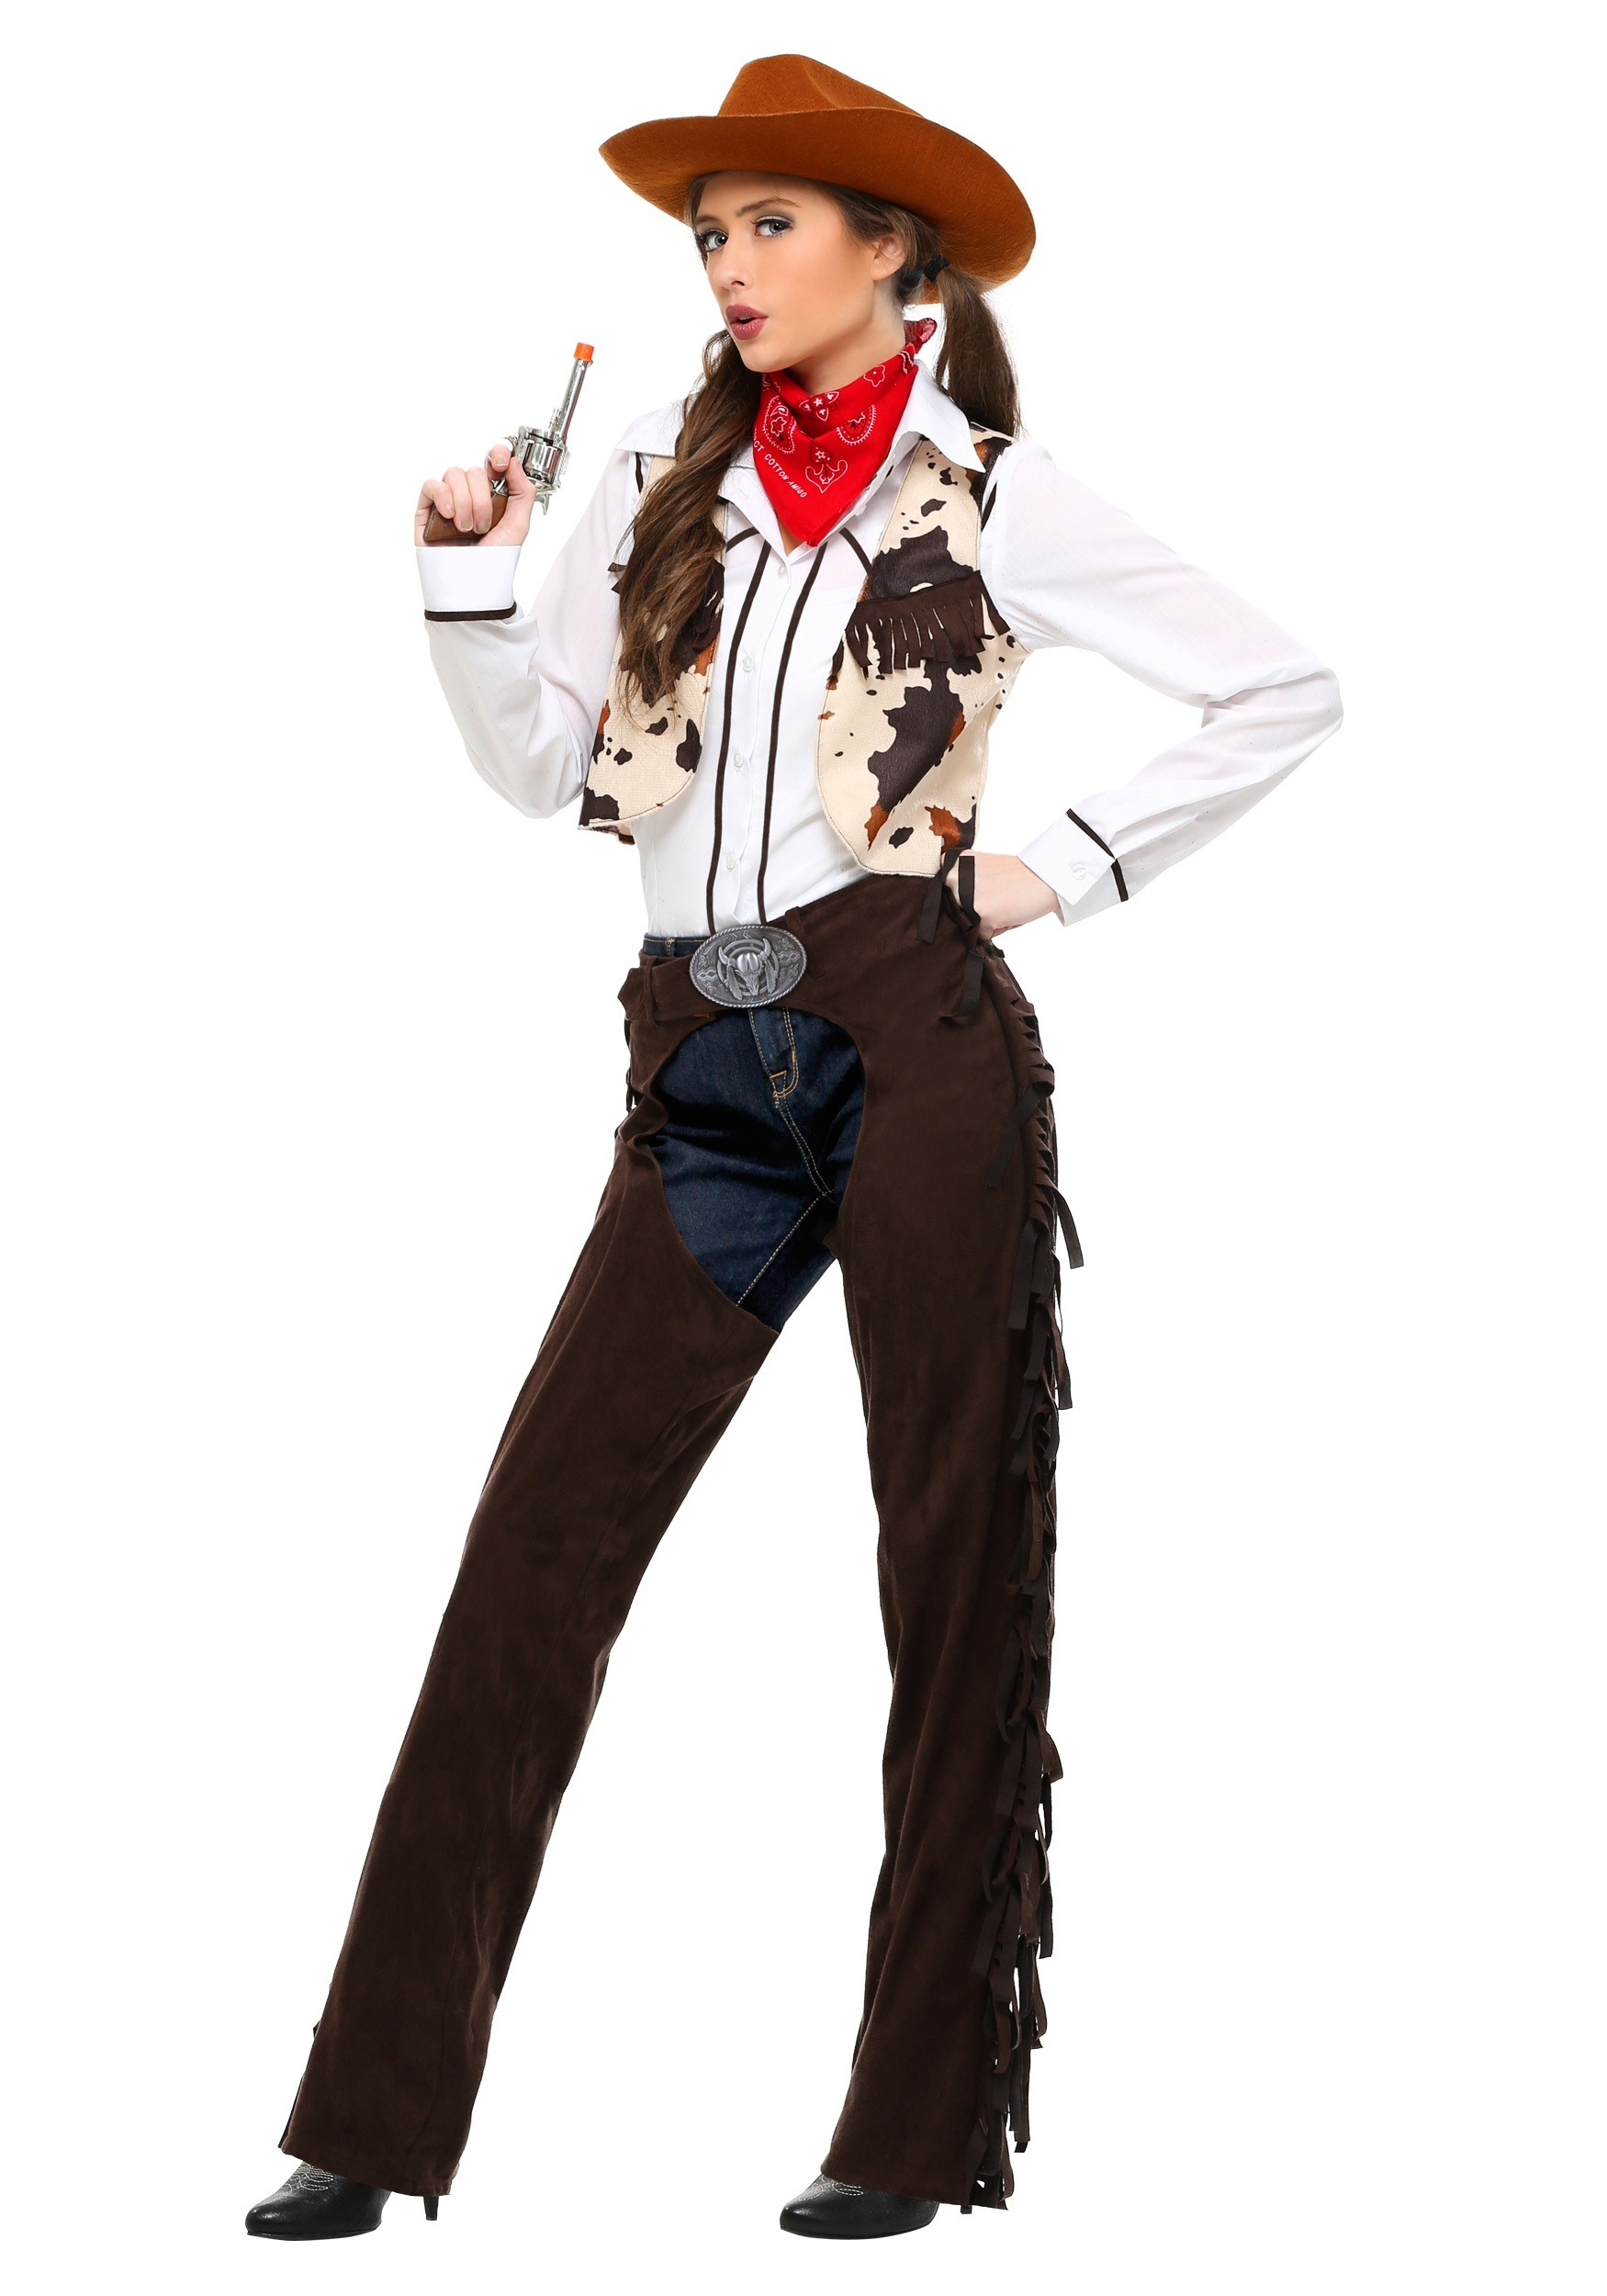 Cowboy costume for girls - photo#21